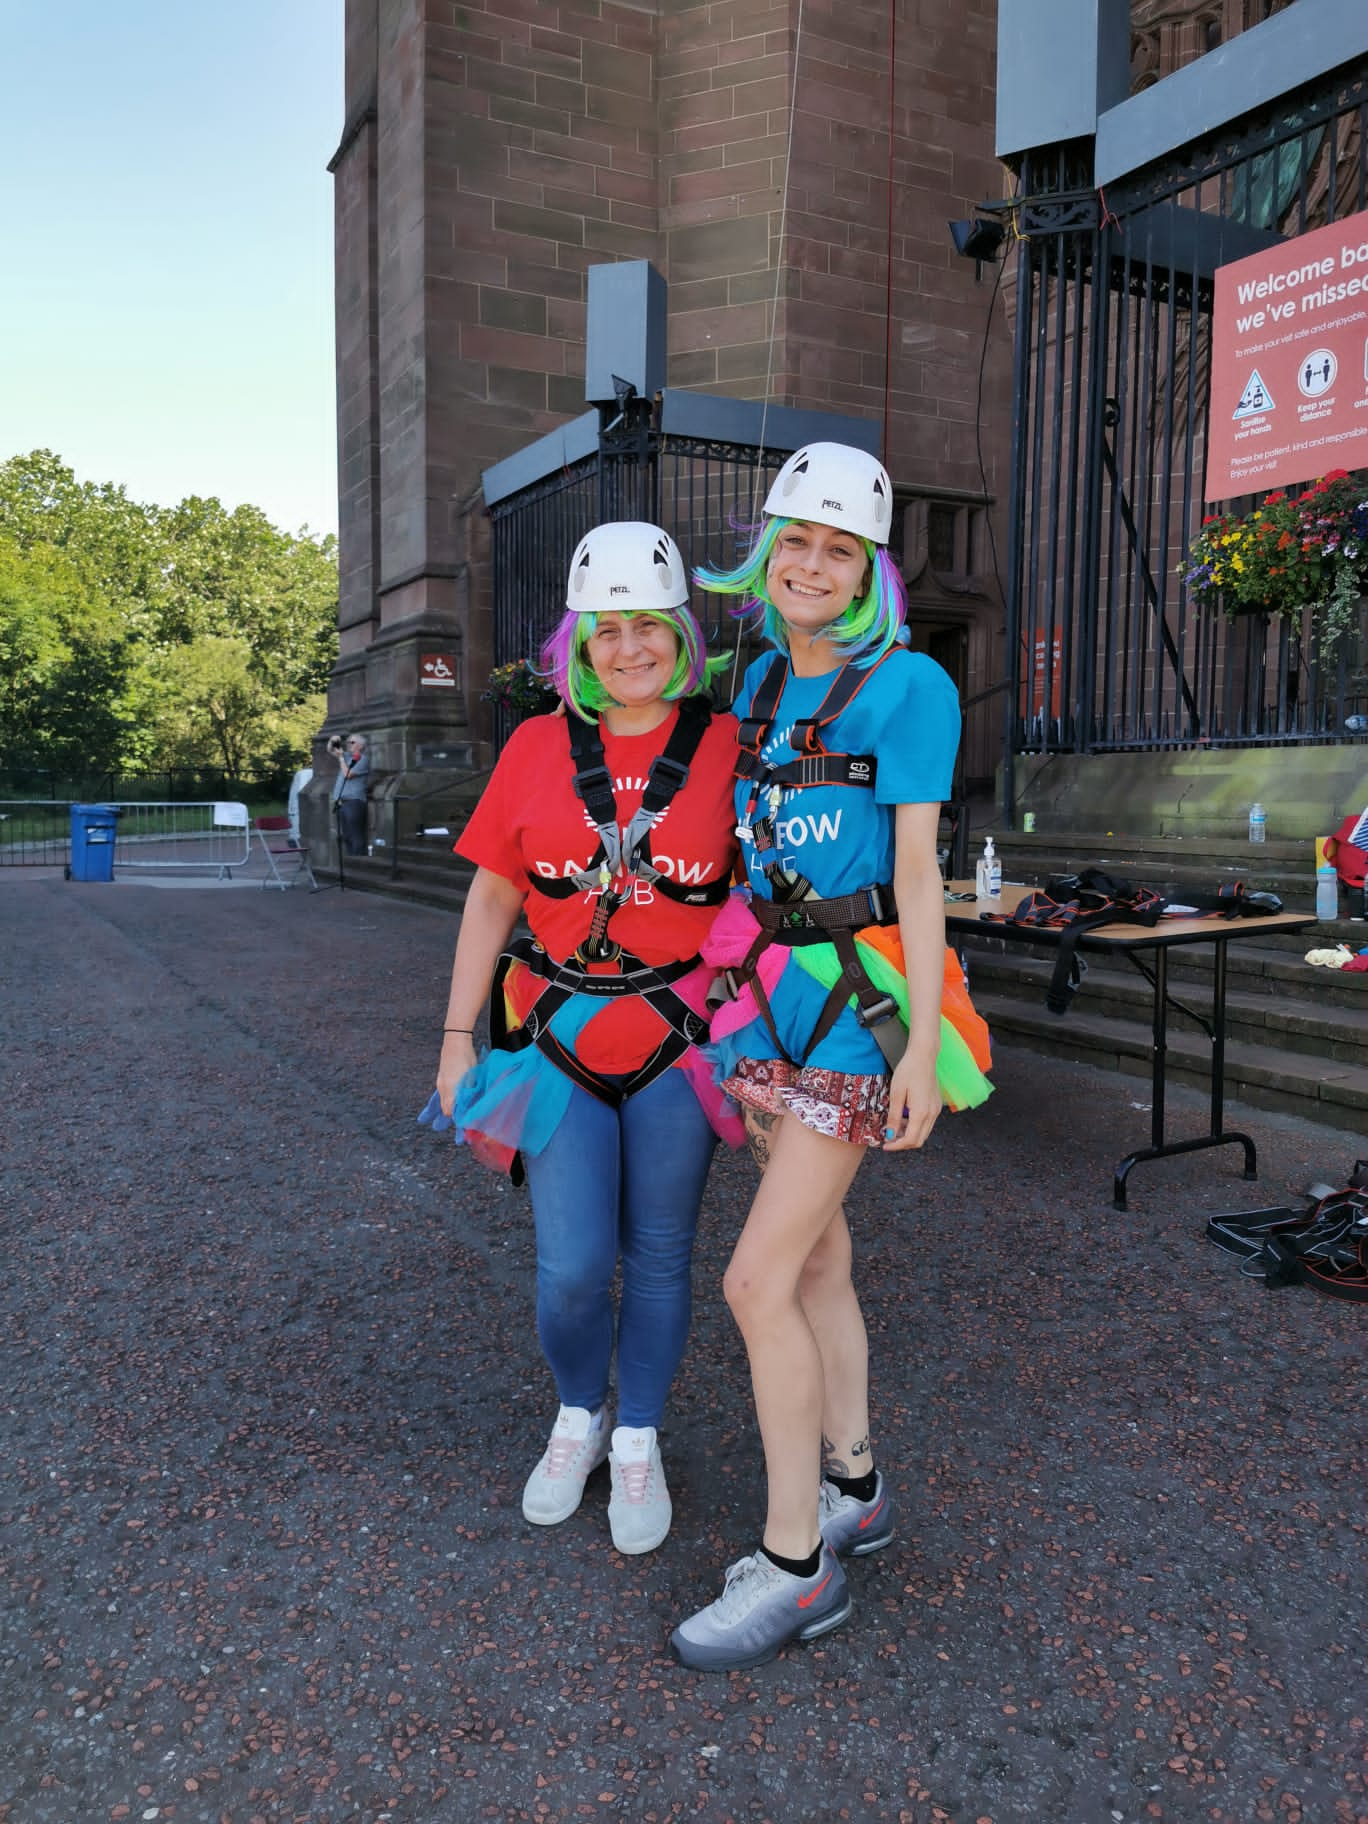 Abseiling heroes raise over £3,800